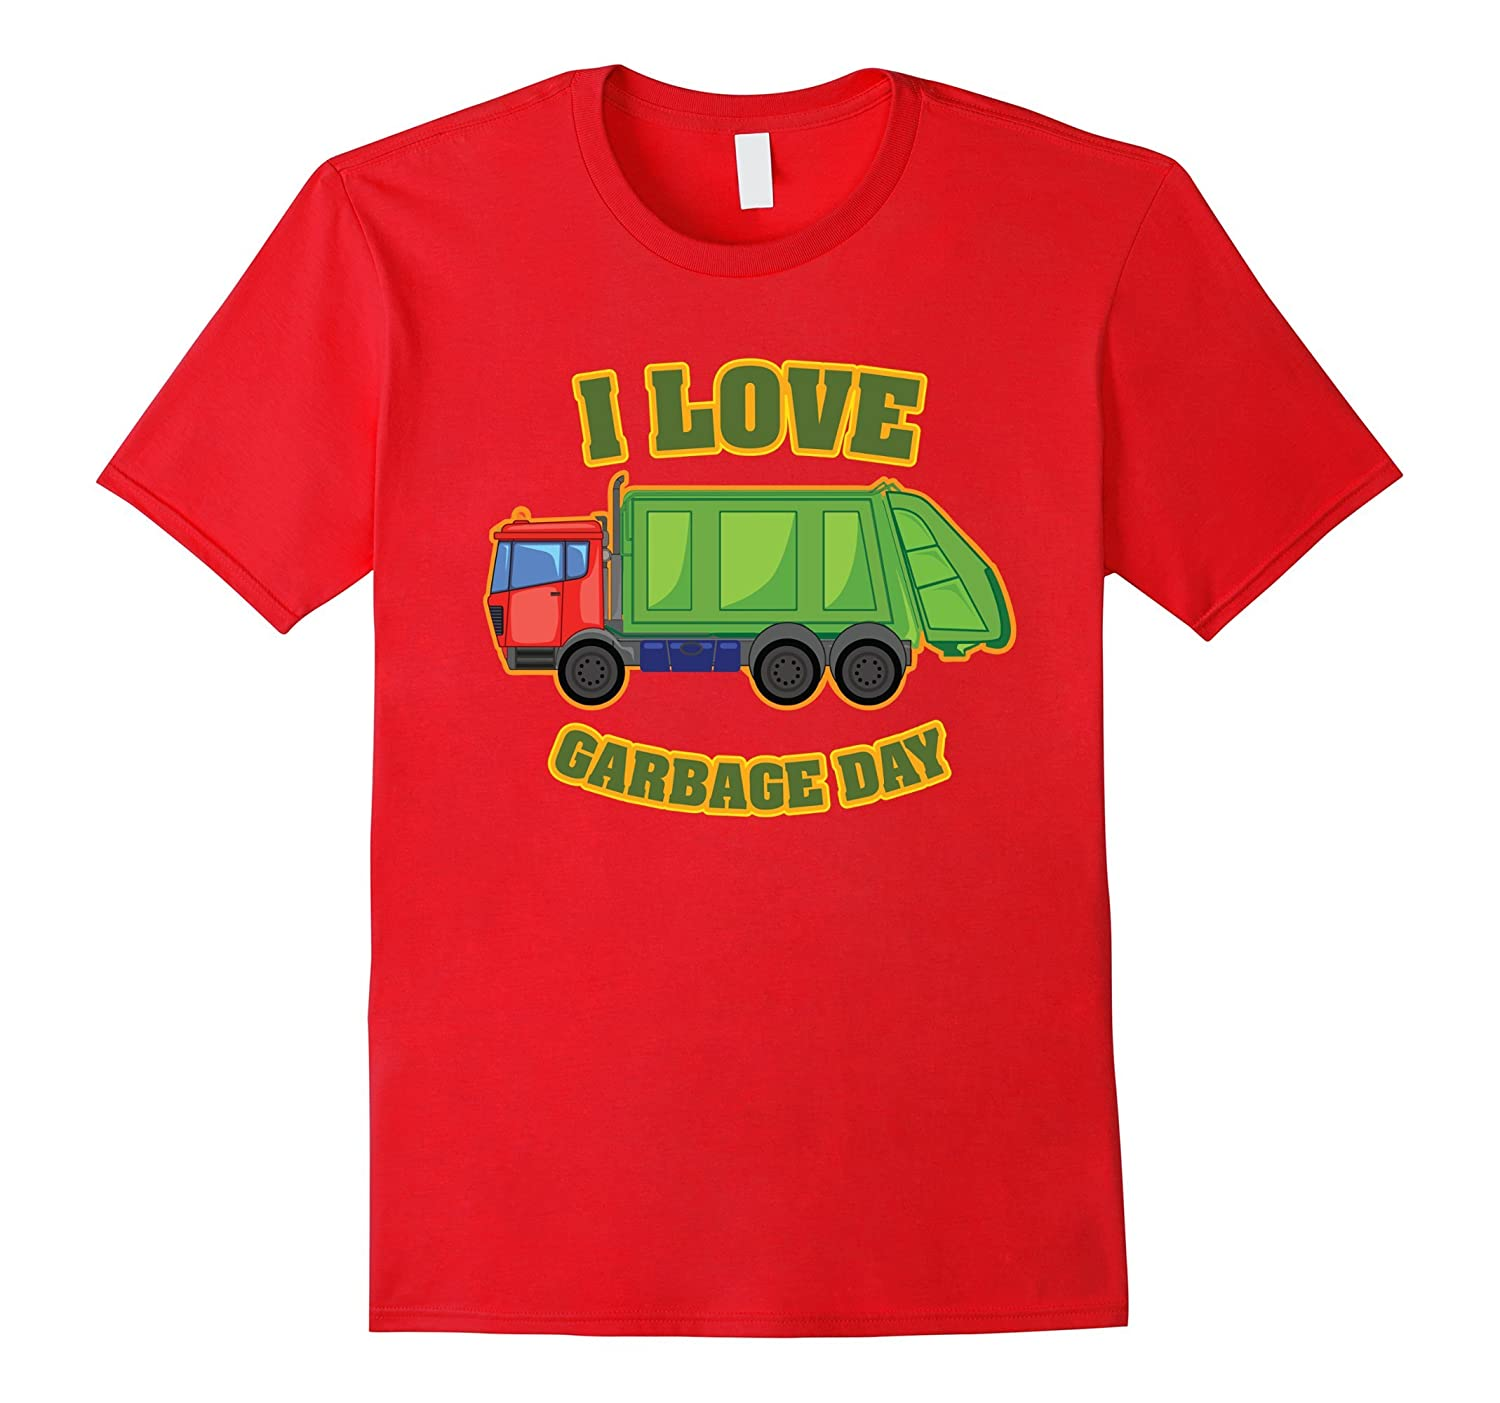 Garbage Day Trash Truck T Shirt for Kids and Toddlers-Vaci